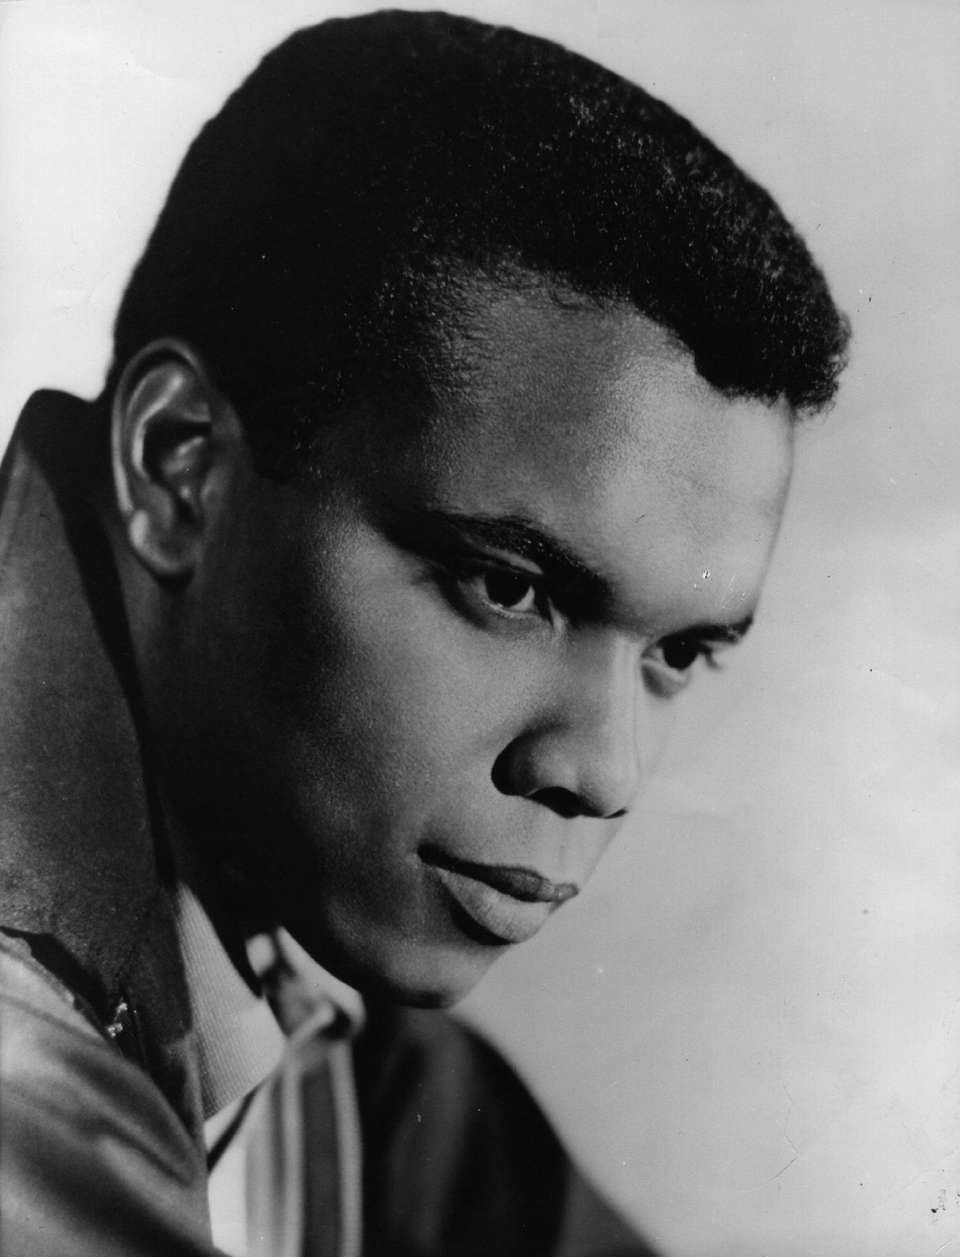 Singer and actor Johnny Nash (born 1940), who